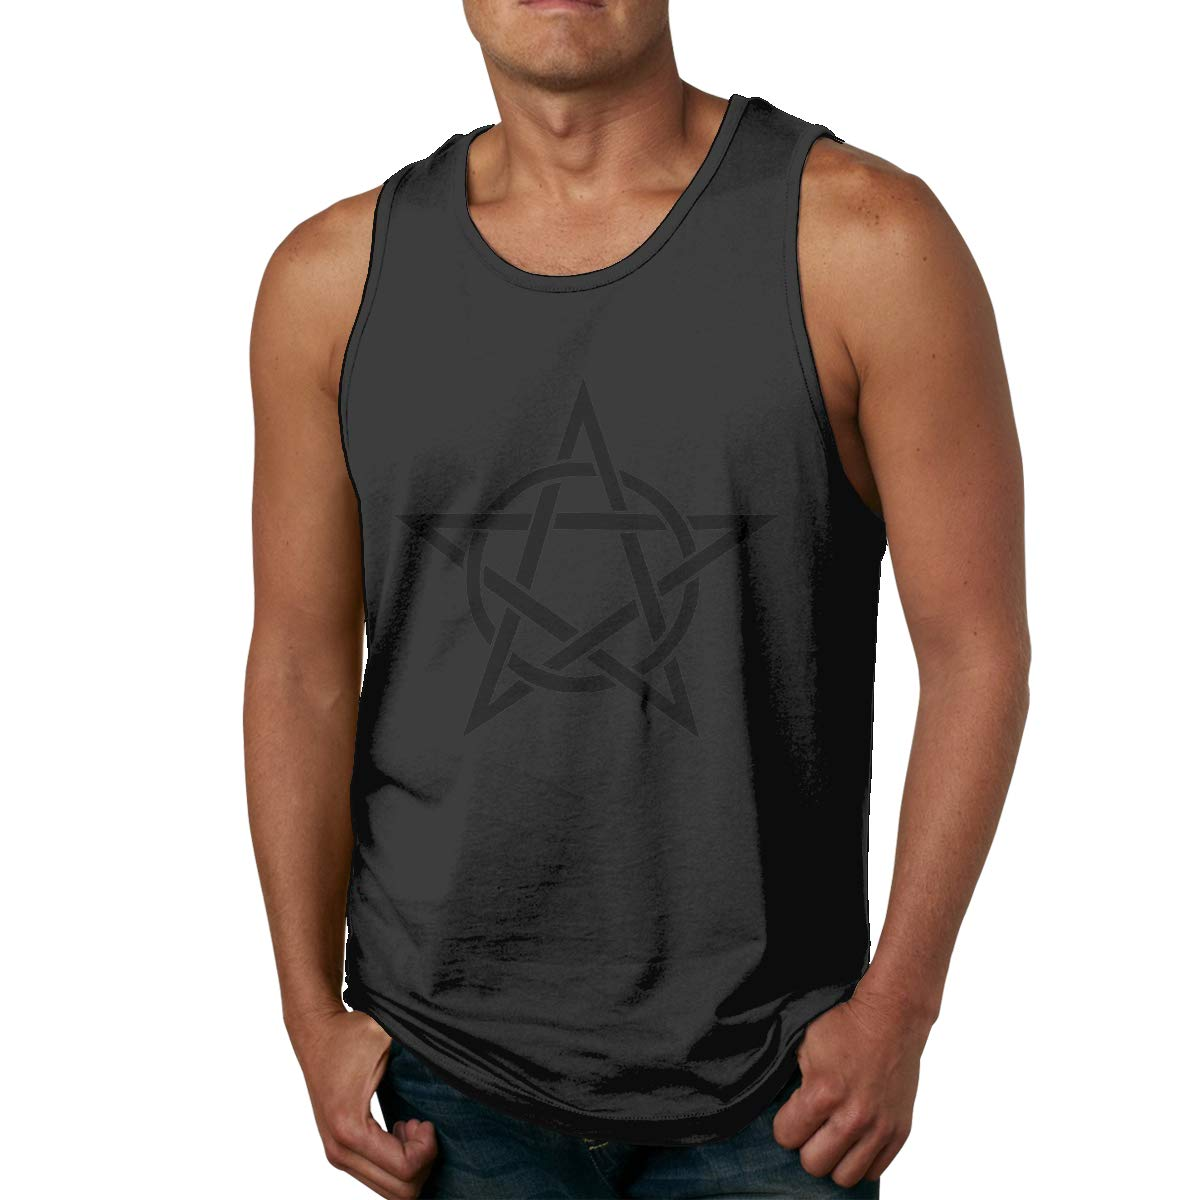 FKAHQ Wiccan and Pagan Symbolism Mens Printed Vest Sports Tank-Top Shirt Leisure Sleeveless Shirts